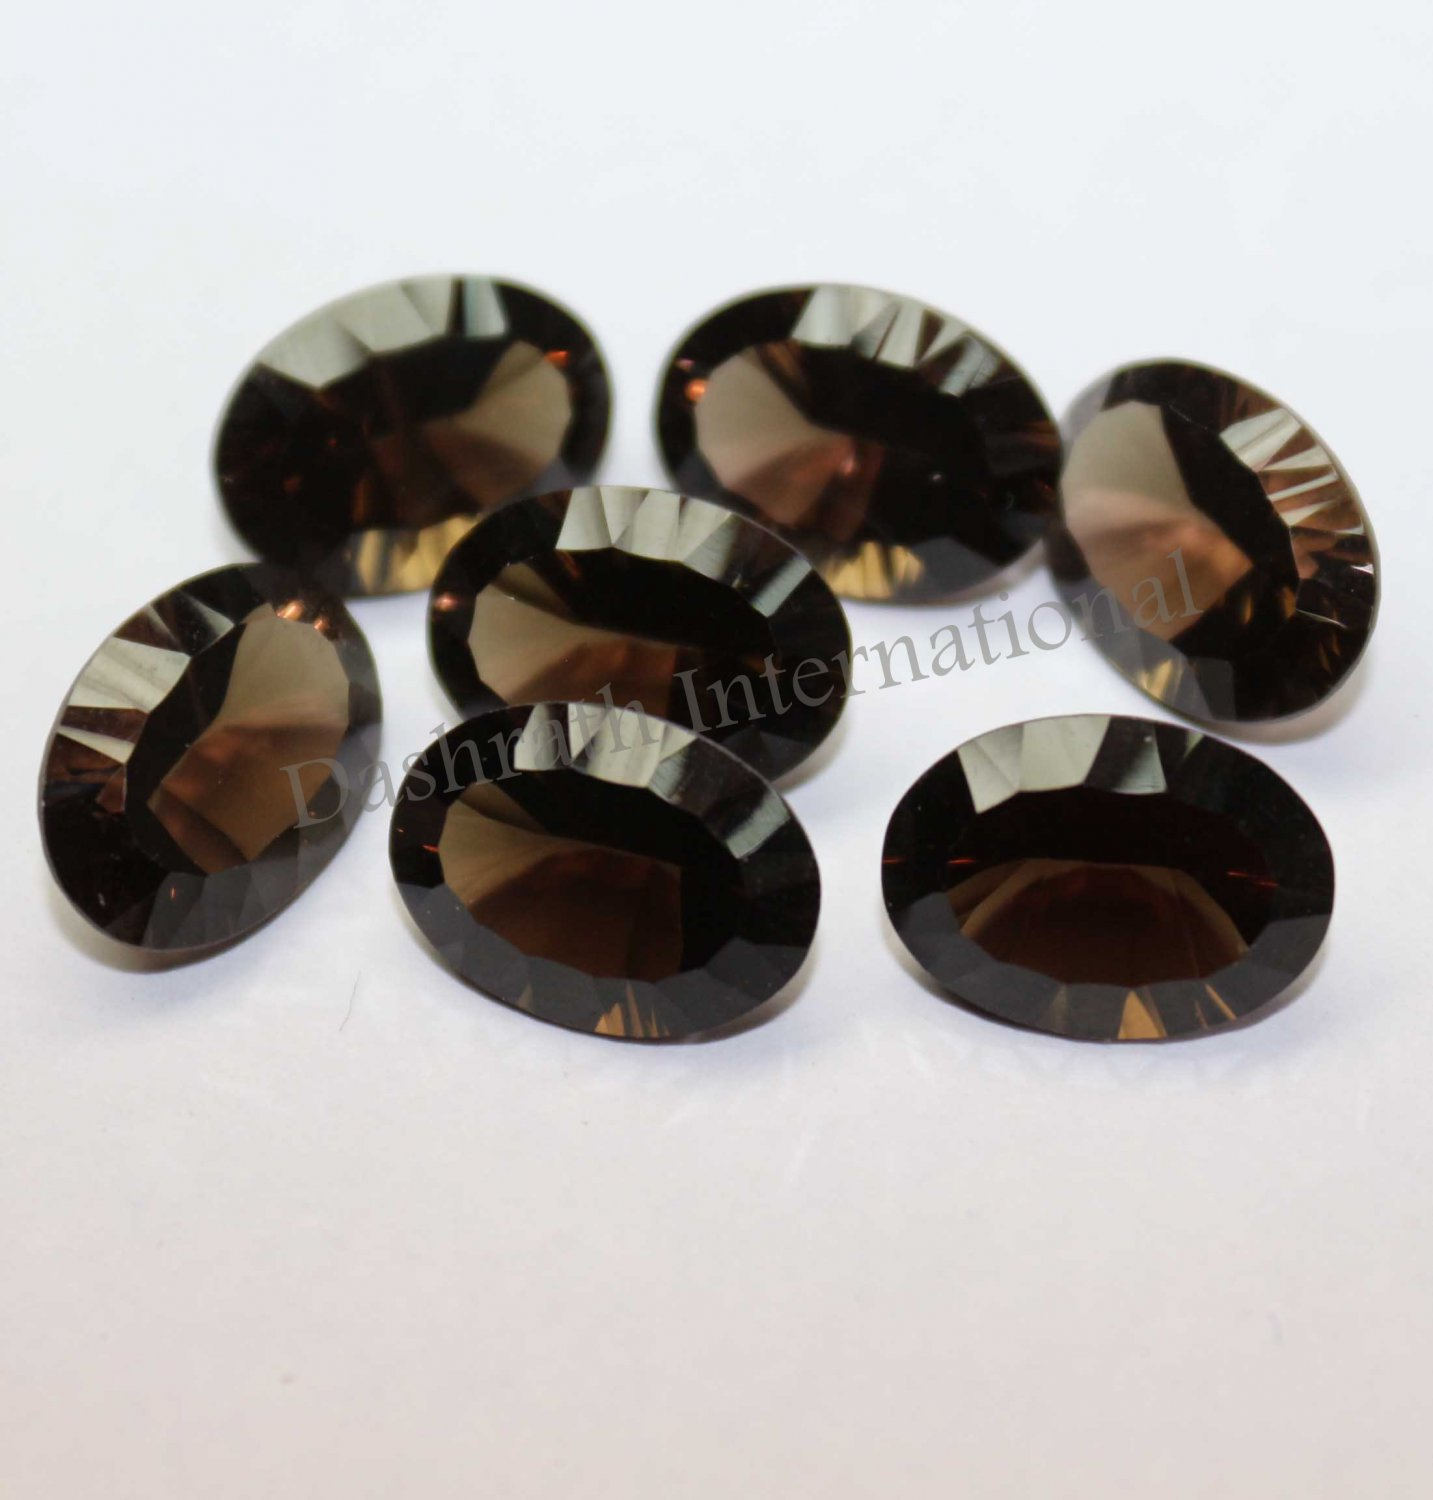 10x12mm Natural Smoky Quartz Concave Cut  Oval  25 Pieces Lot  (SI) Top Quality  Loose Gemstone